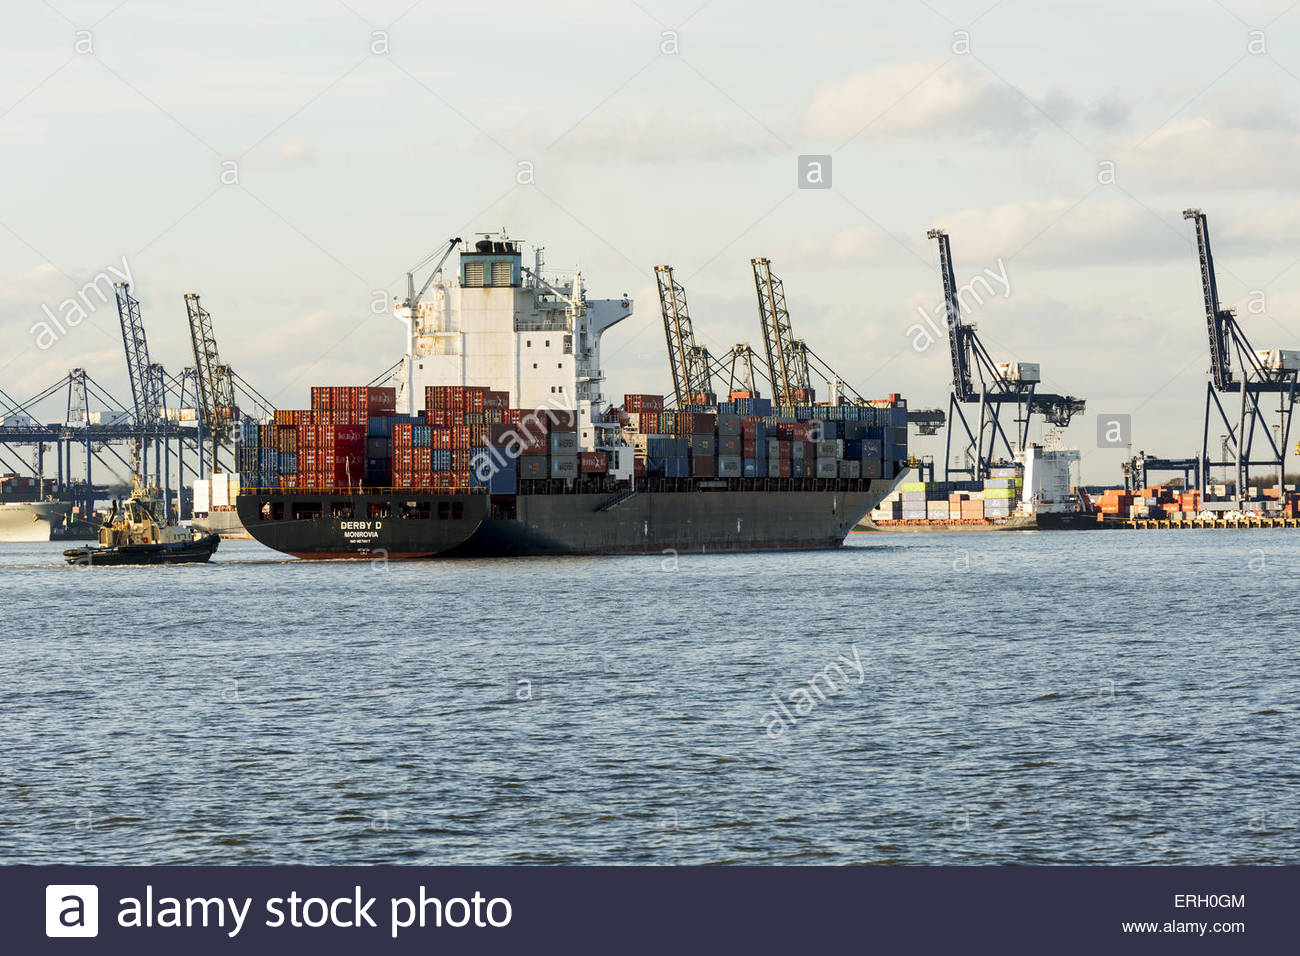 Ship approaches Felixstowe Container Port with tug escort - Stock Image